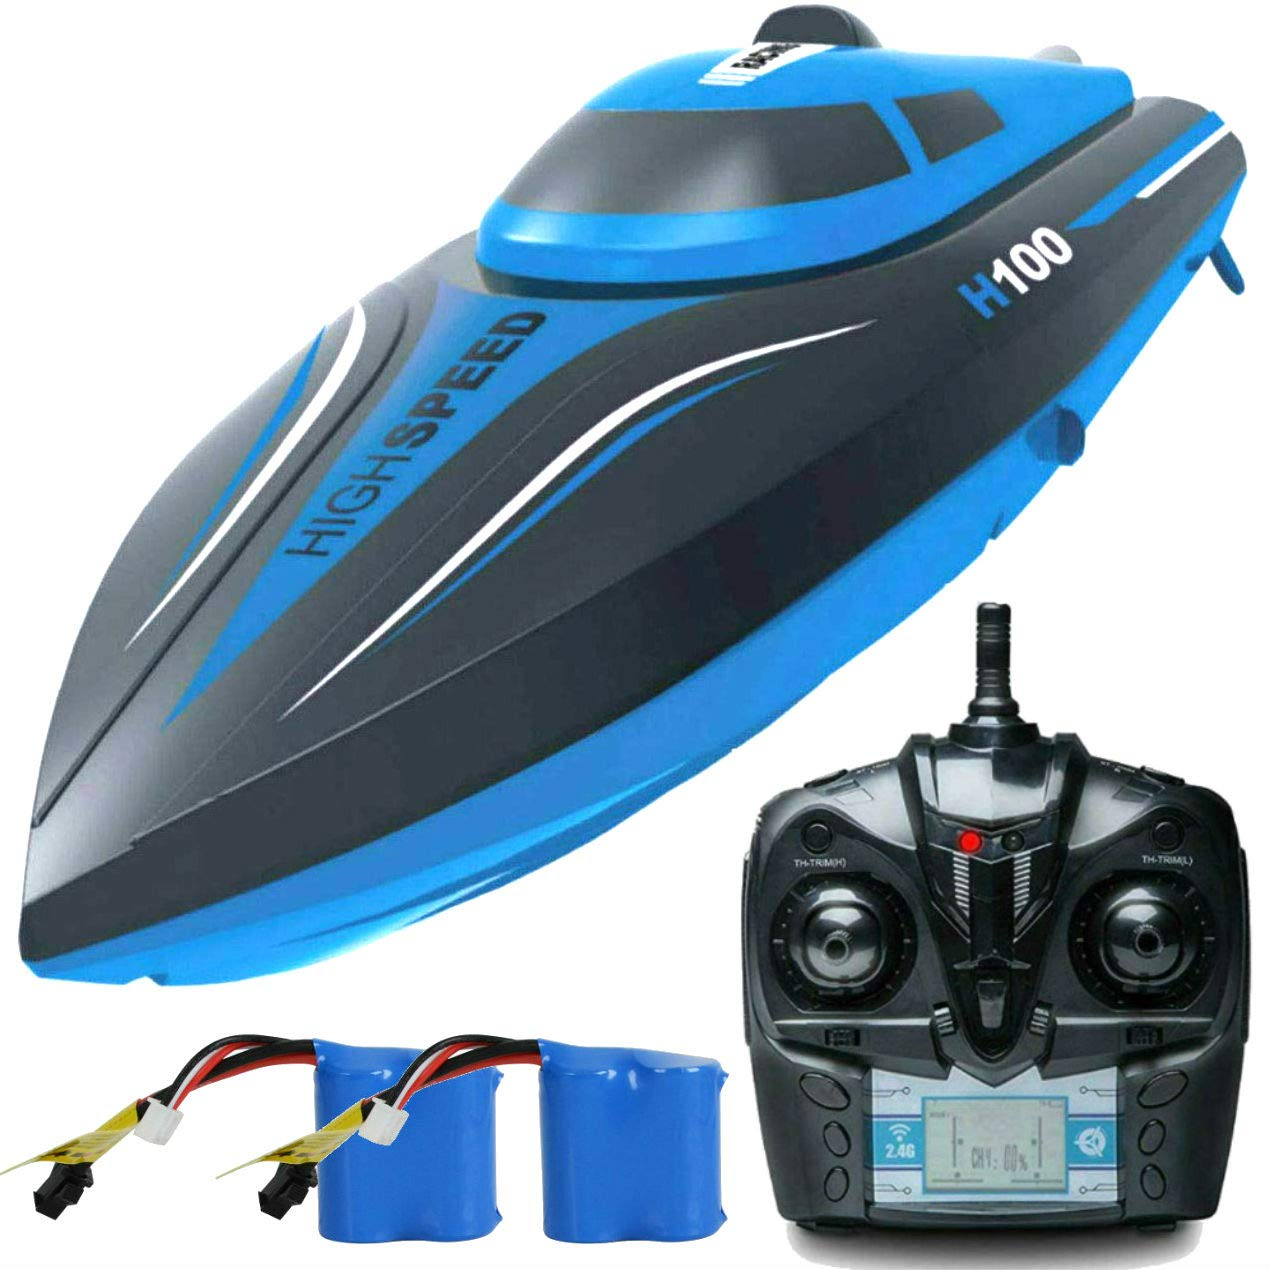 SkyCo H100 Rc Boat 2.4GHz High Speed Remote Control Electric RC Racing Boats Toy for Kids Men Boys Girls Adults Pool Lake Outdoor Use Bonus Extra Battery (H100)